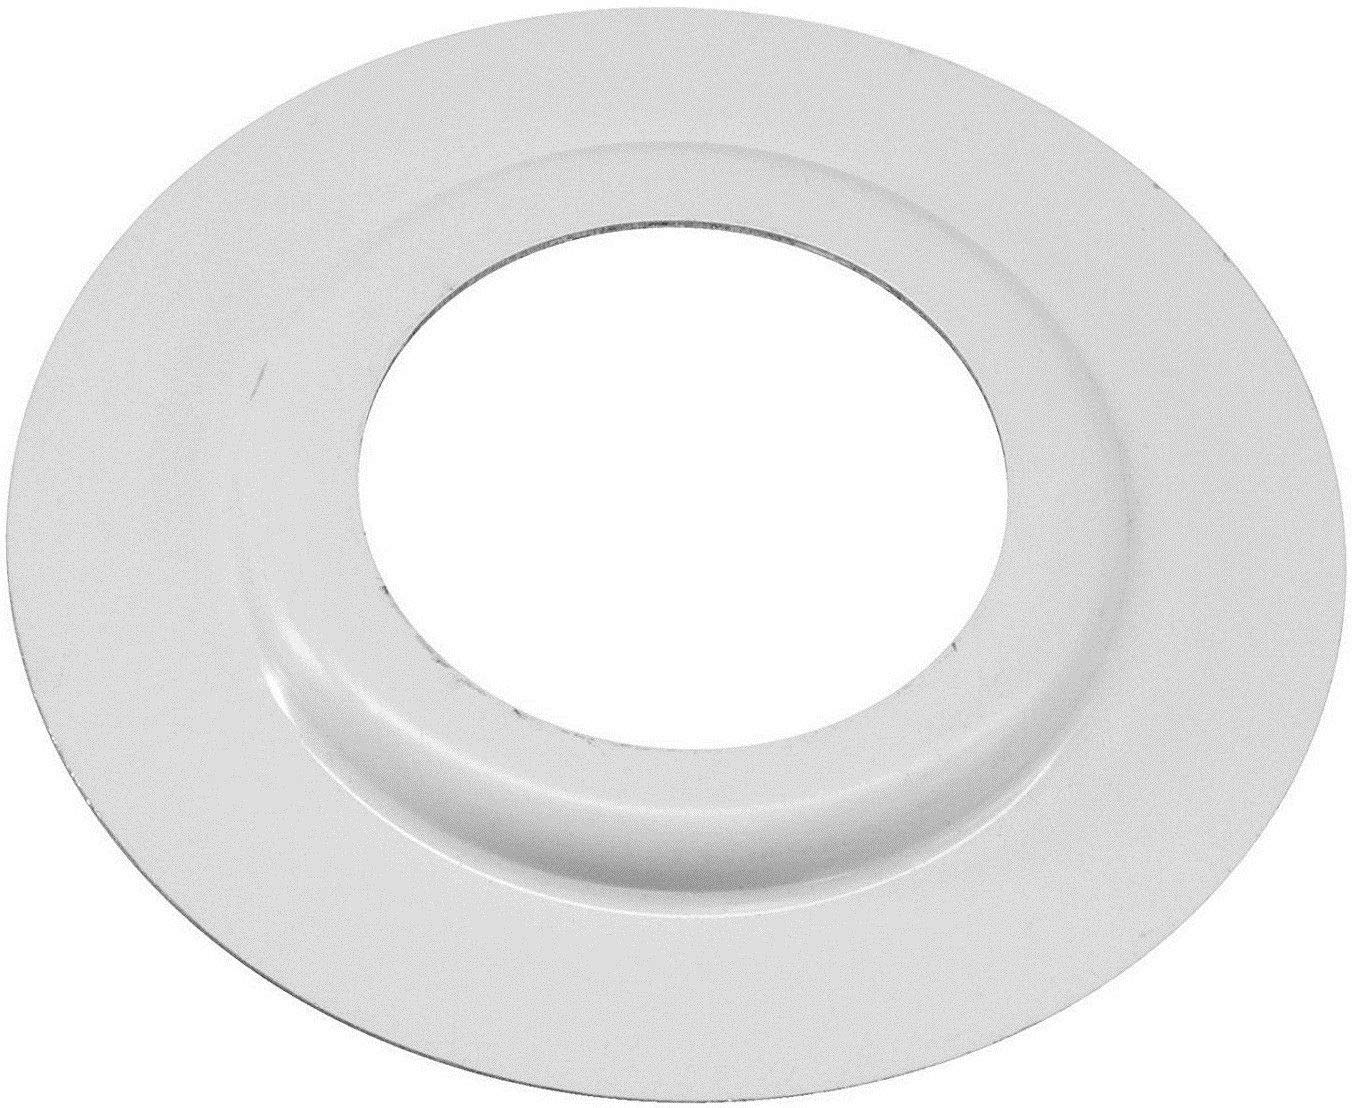 White White//Black Metal Lamp Shade Reducer Plate for ES//E27 to BC//B22 Light Fitting Lampshade Ring Washer Fitter